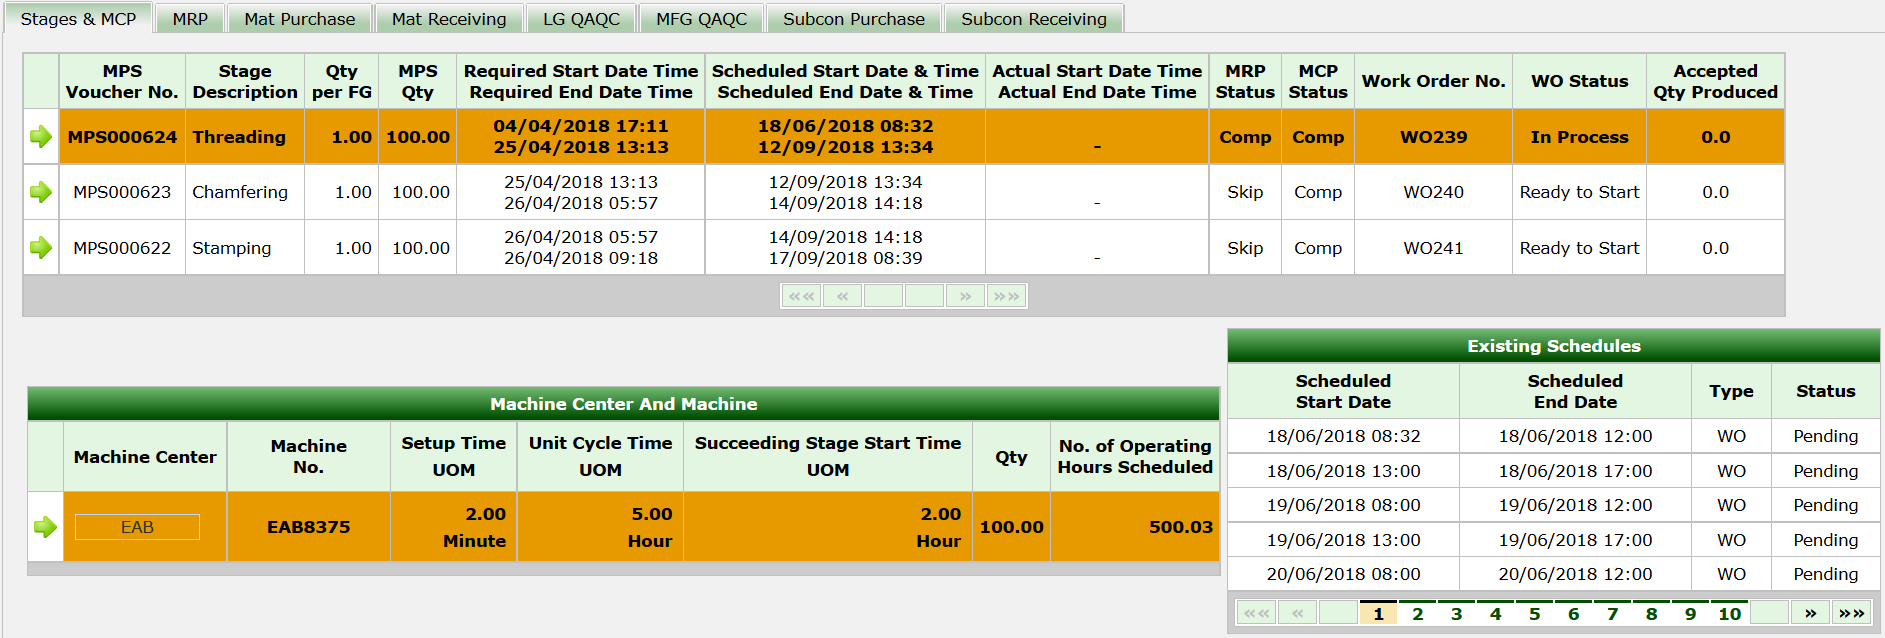 synergix erp system order status